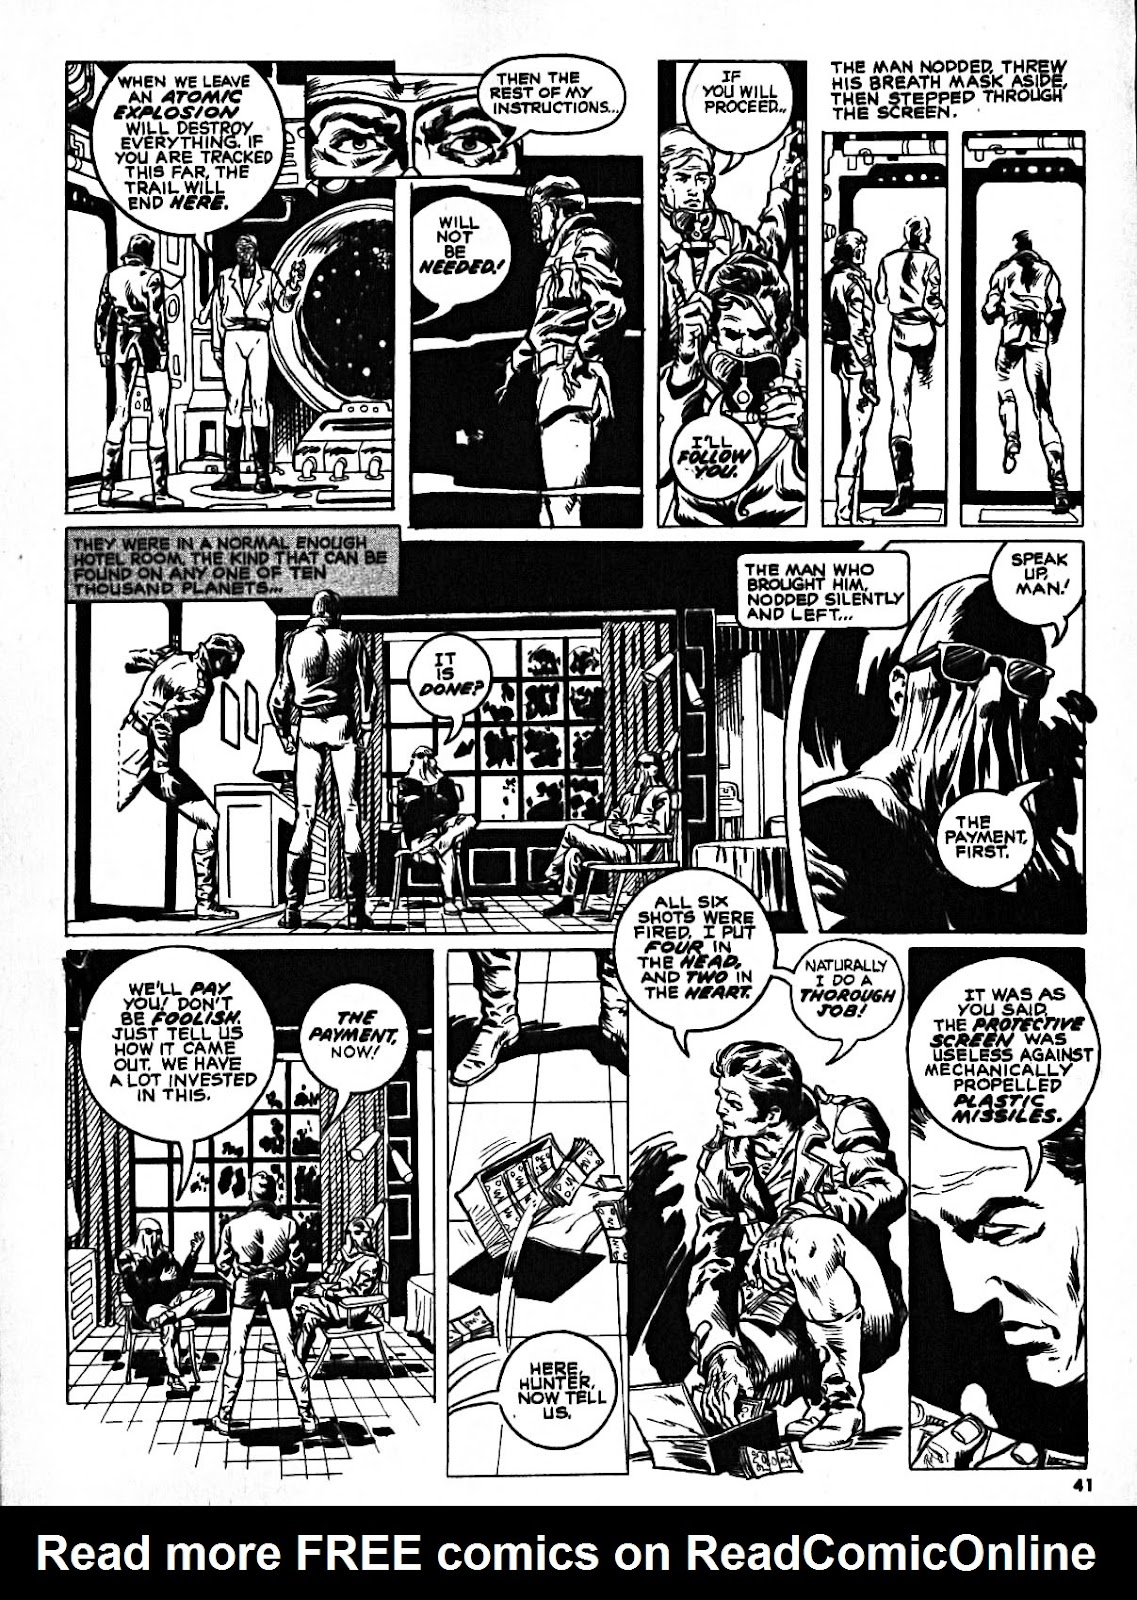 Scream (1973) issue 8 - Page 39